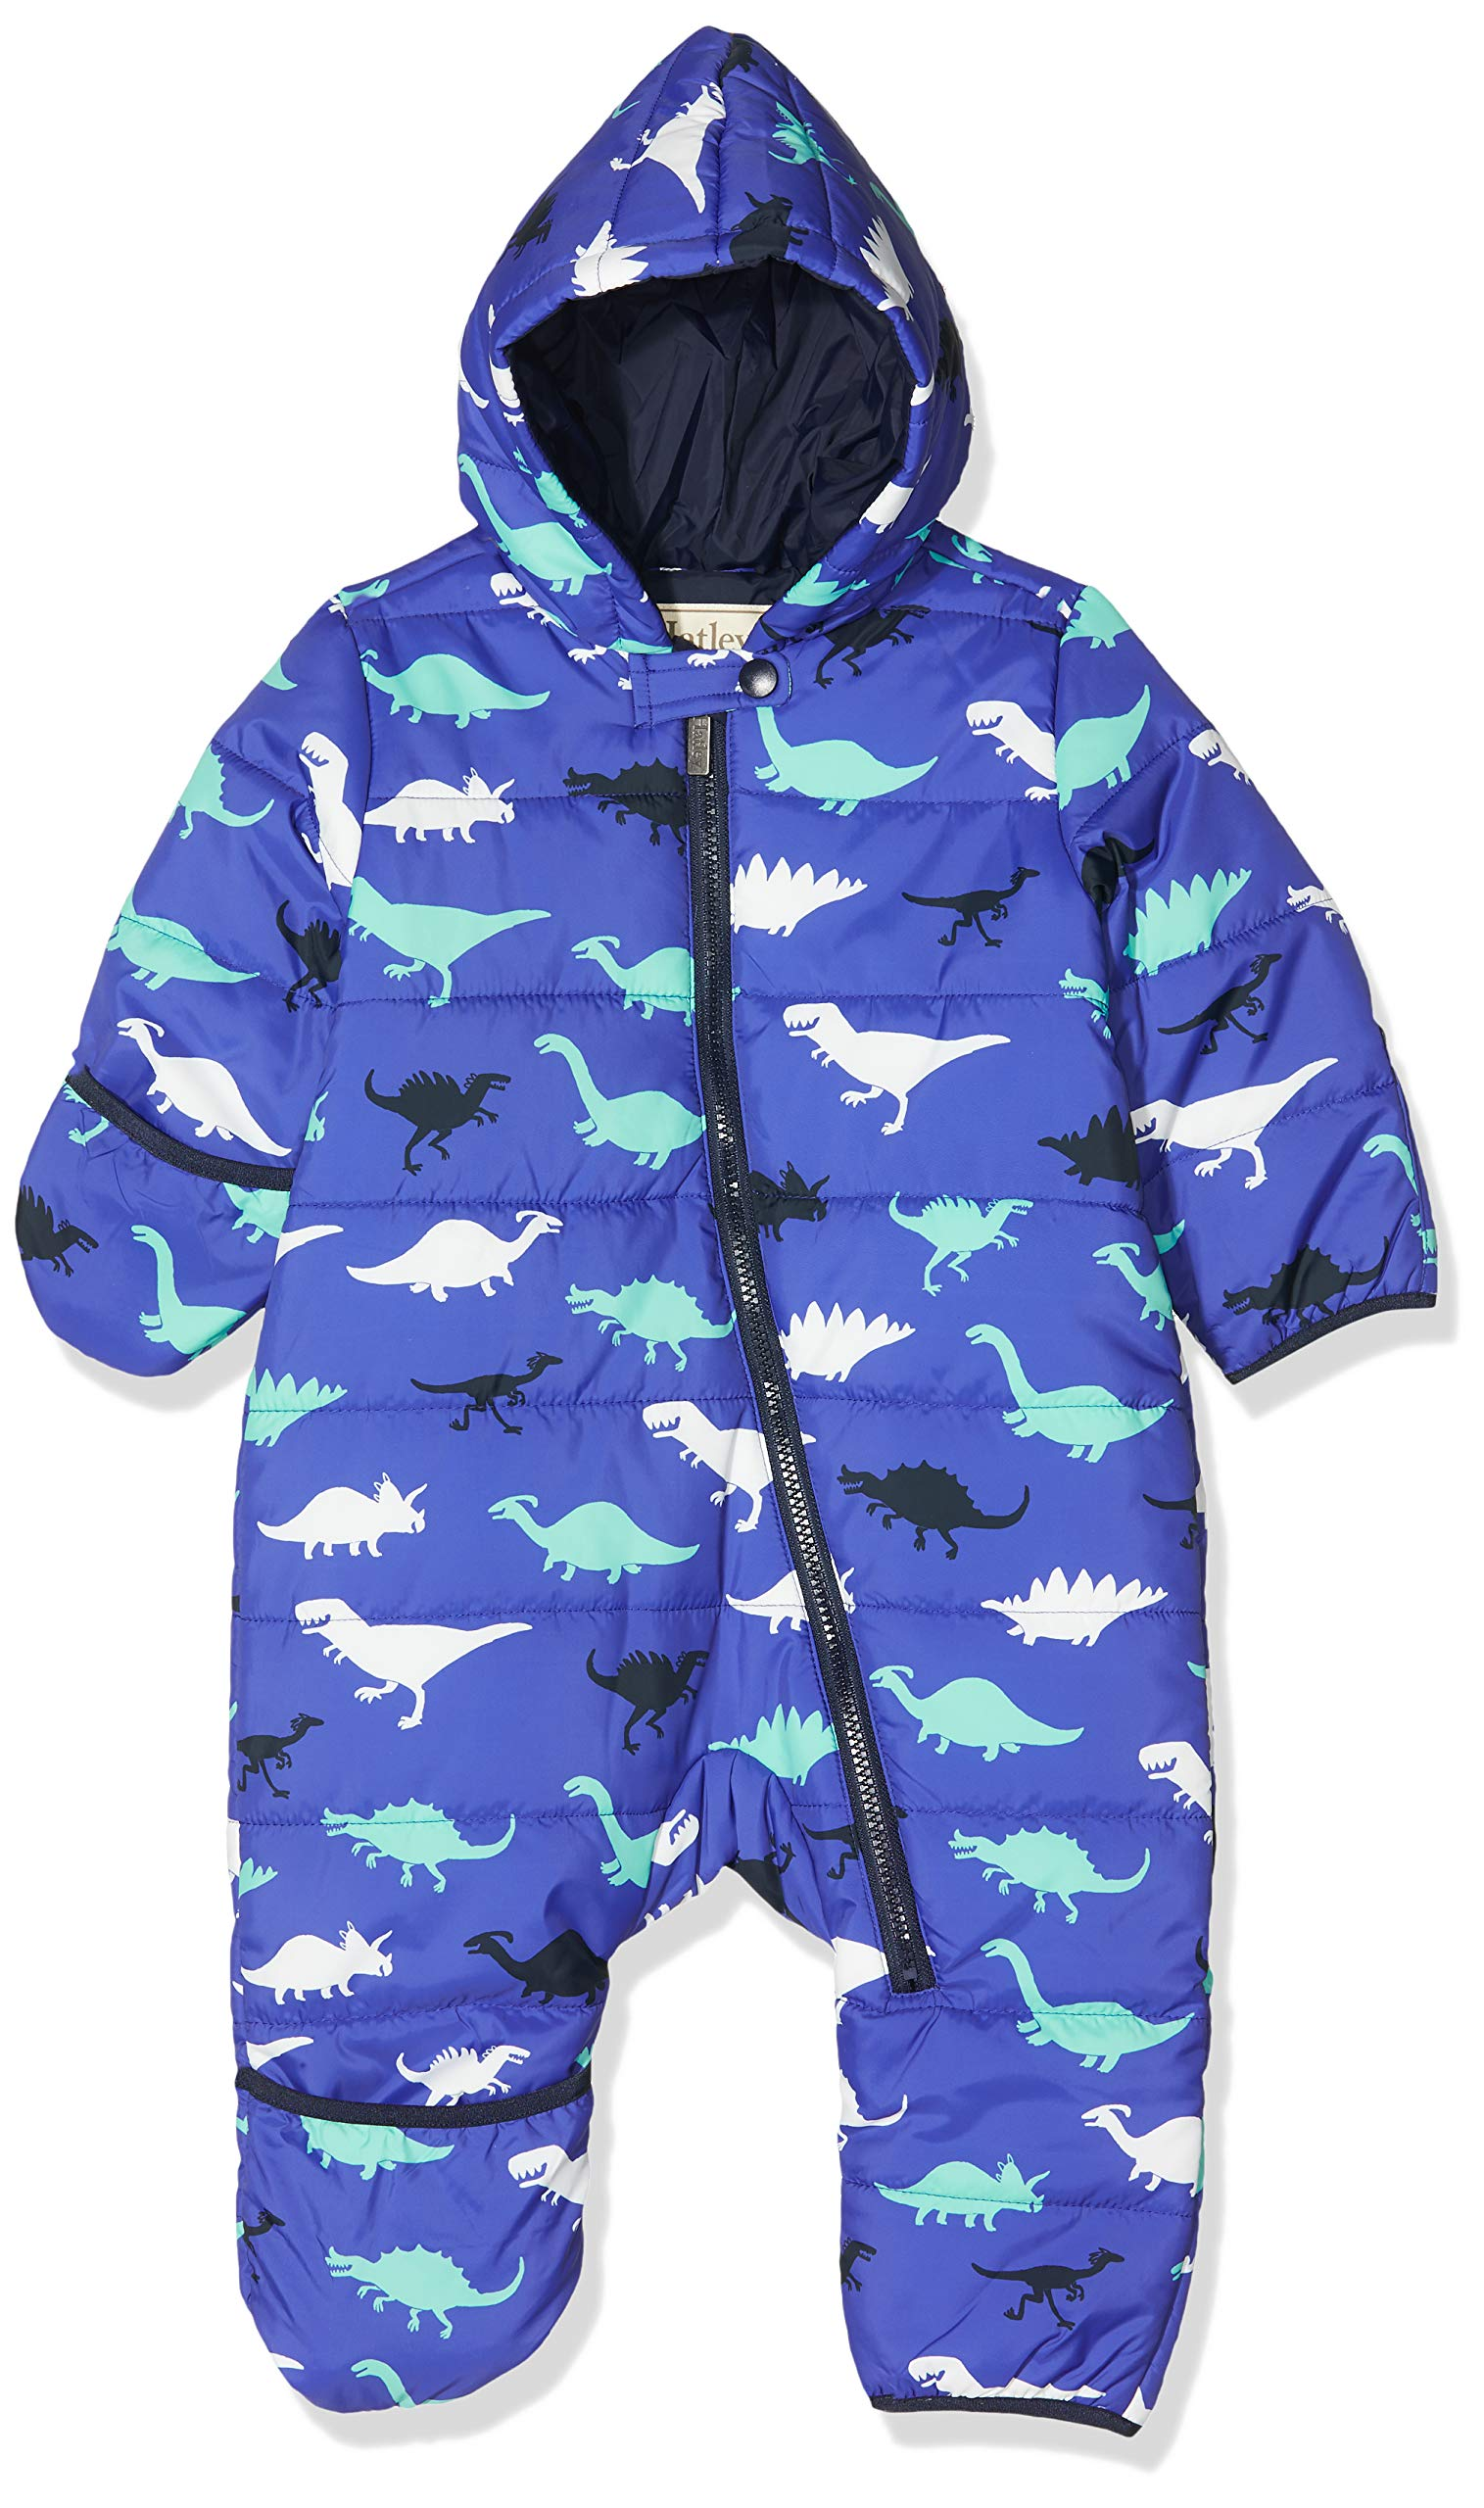 Hatley Mini Rain Bundler Raincoat impermeable para Bebés 1